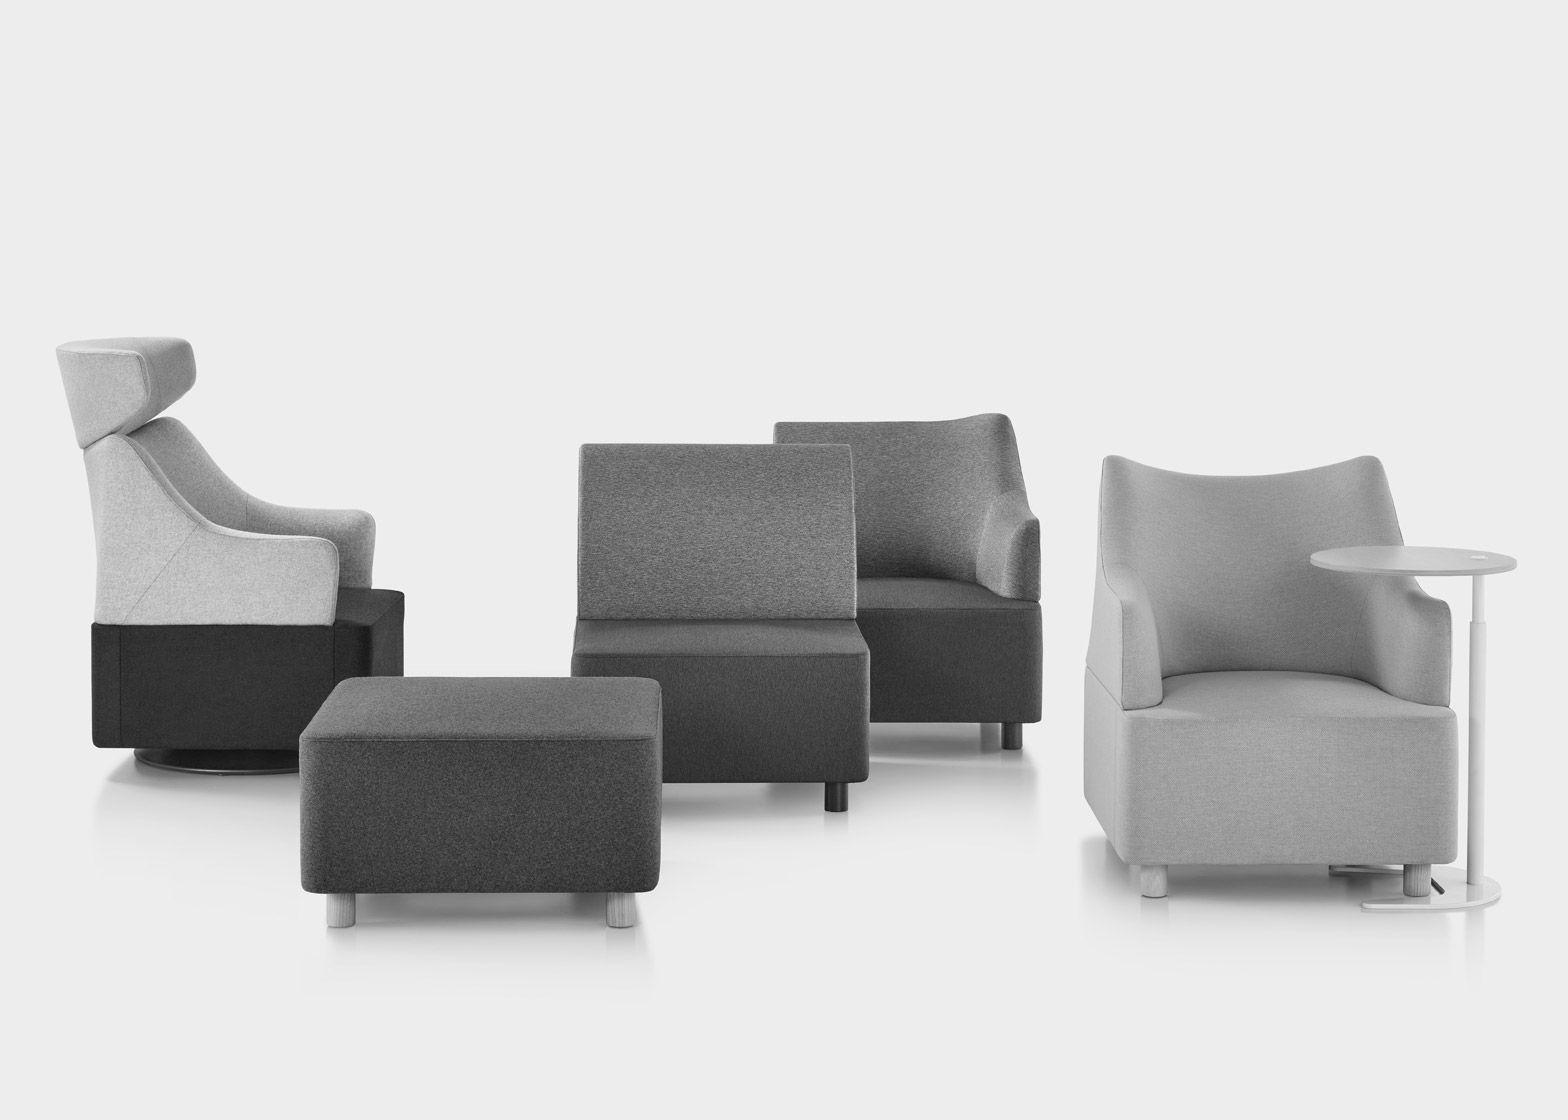 Herman Miller Launch Plex Modular Seating By Industrial Facility